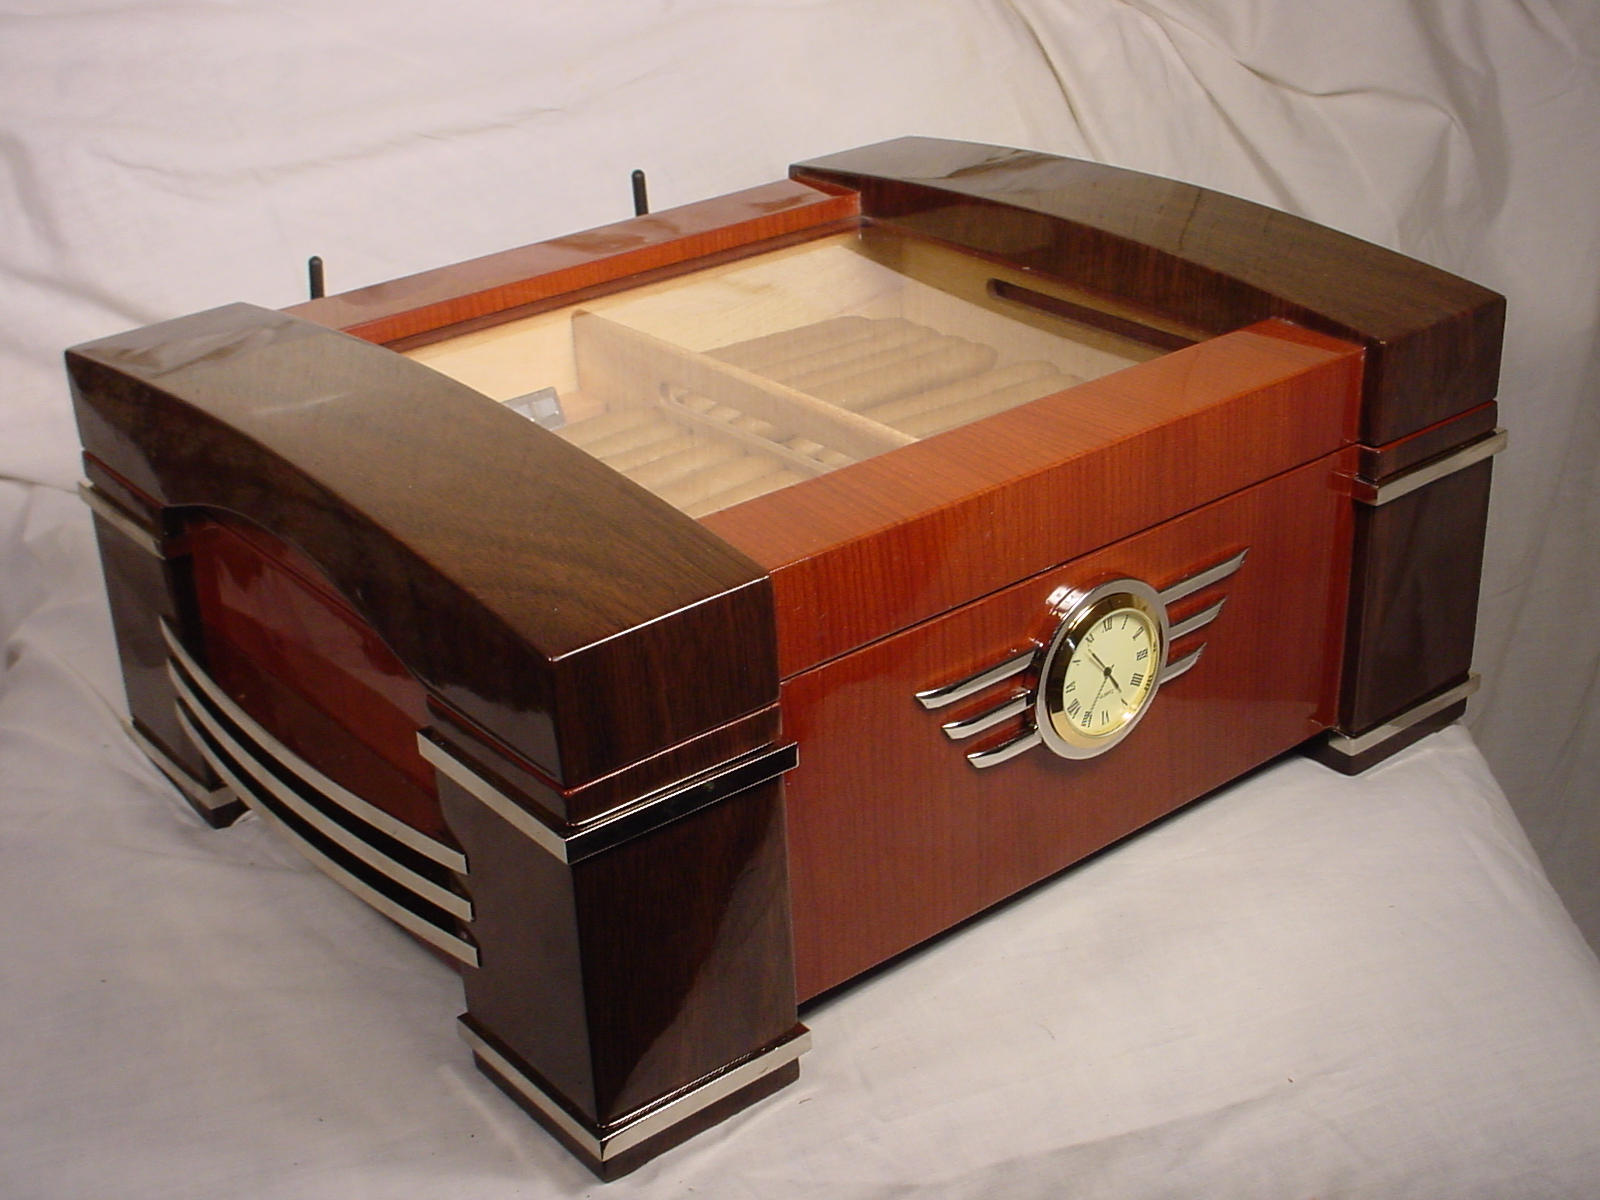 FileHumidor CL Serverjpg Wikimedia Commons